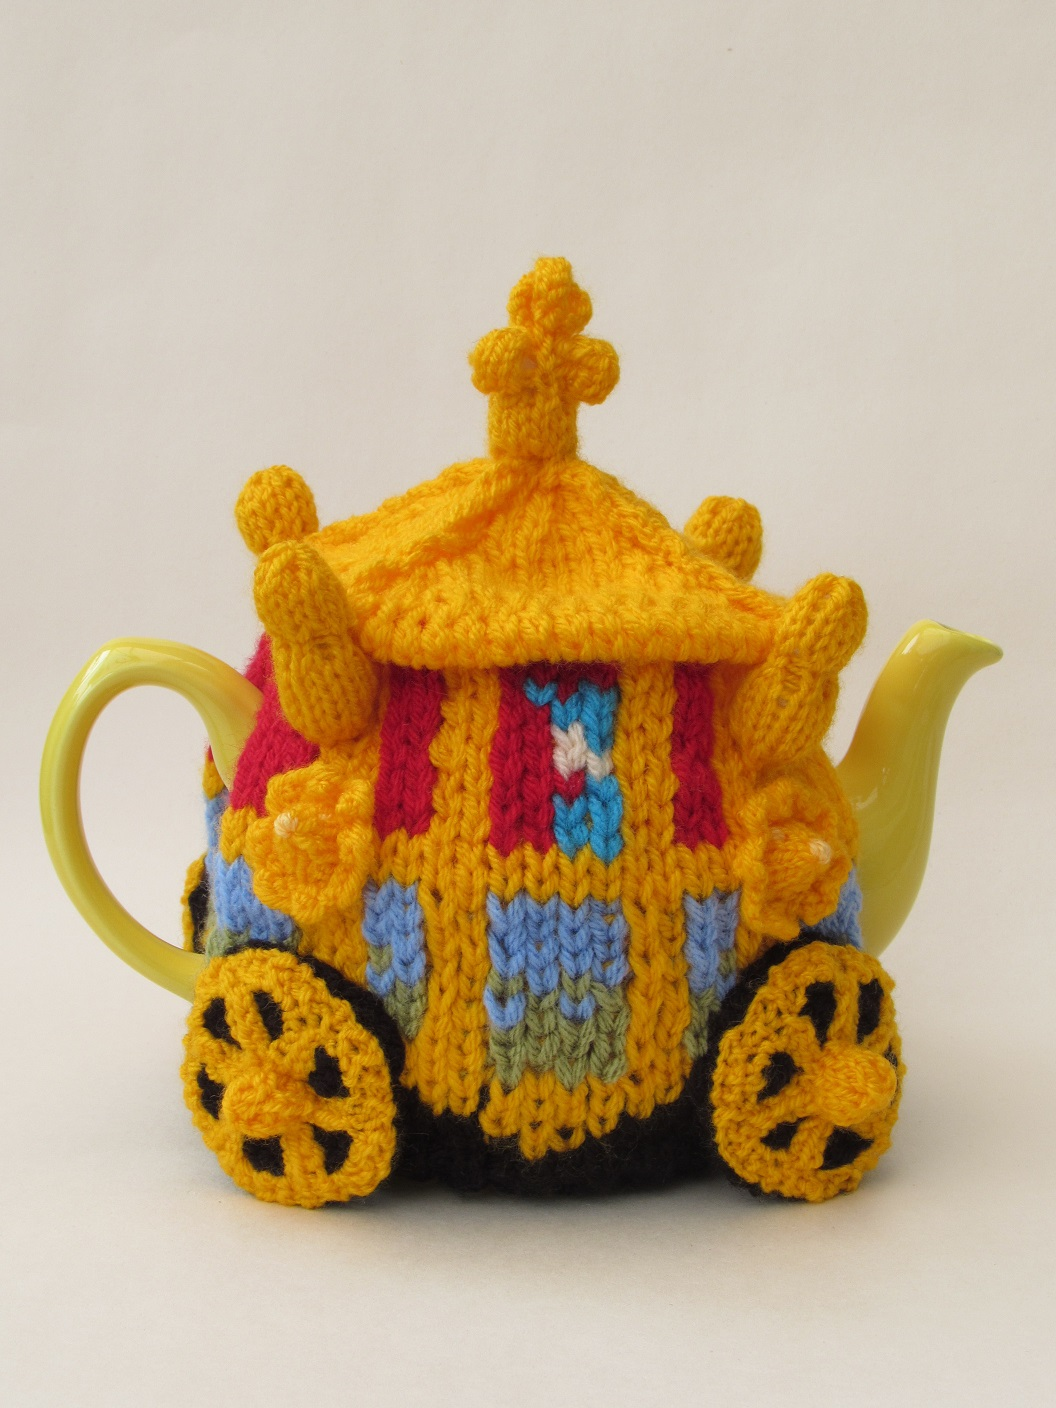 Knitting Pattern For Yoda Tea Cosy : Queens Golden State Coach tea cosy knitting pattern